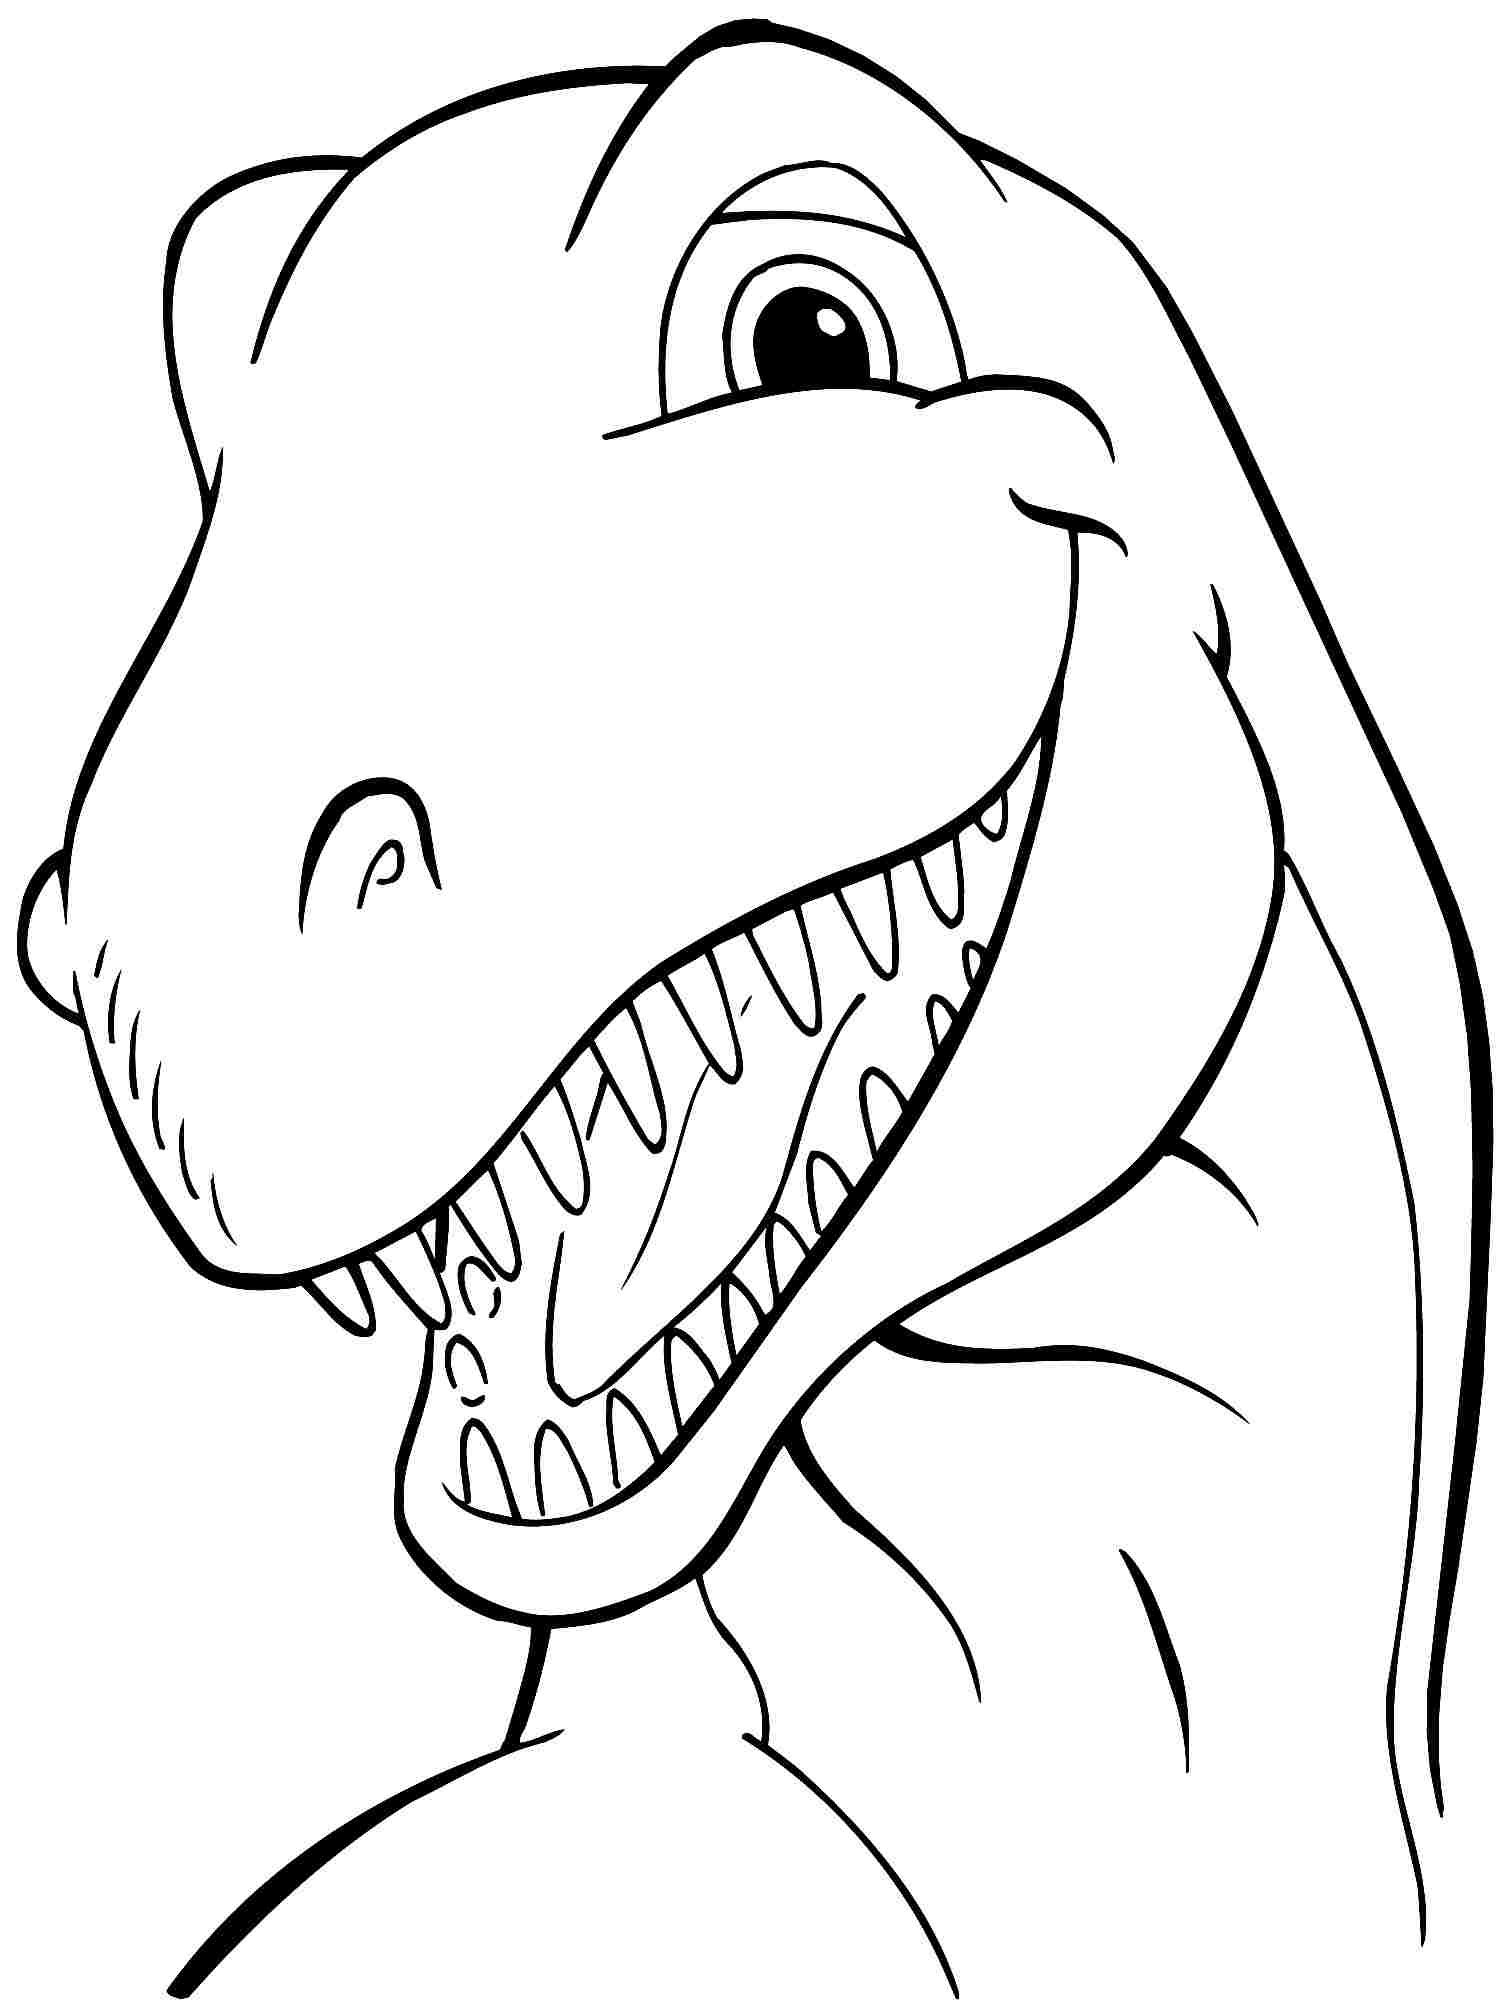 Girl Dinosaur Coloring Pages at GetDrawings com | Free for